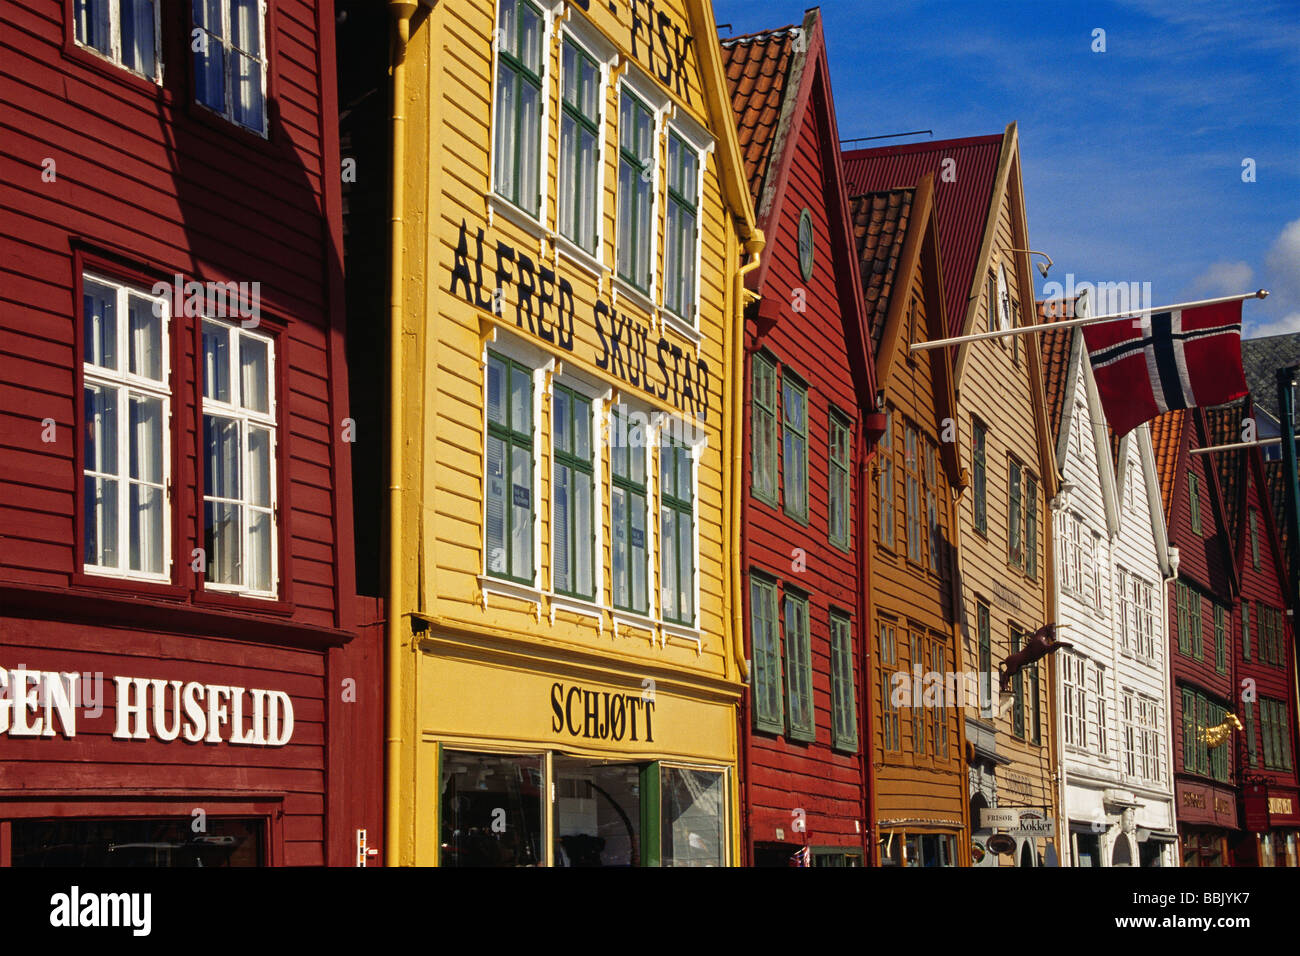 Historic wooden houses of Bryggen, the medieval German Wharf of Hanseatic merchants in Bergen, Norway. - Stock Image